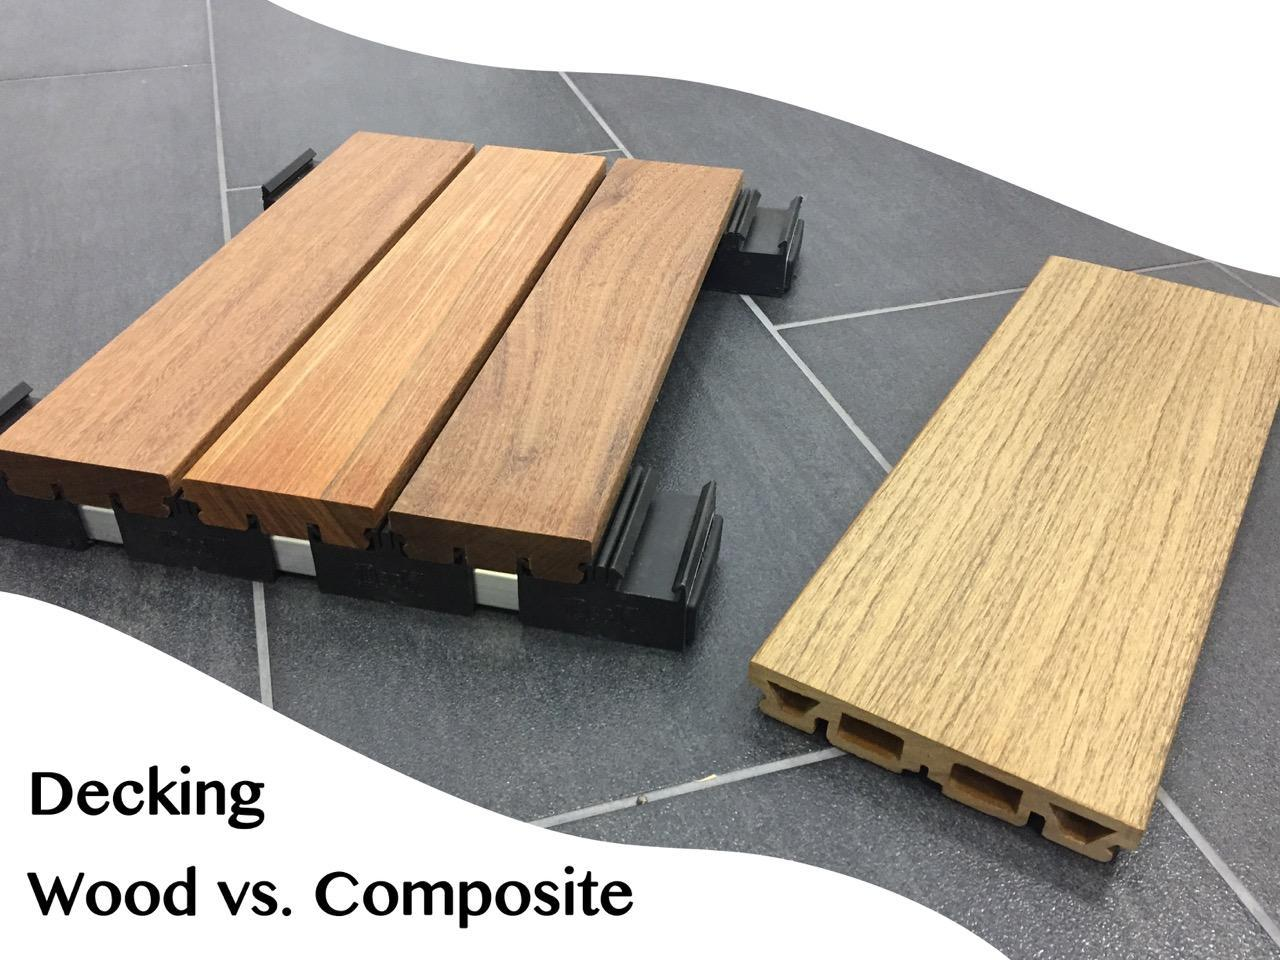 Decking wood vs composite Useful things to know before buying a deck